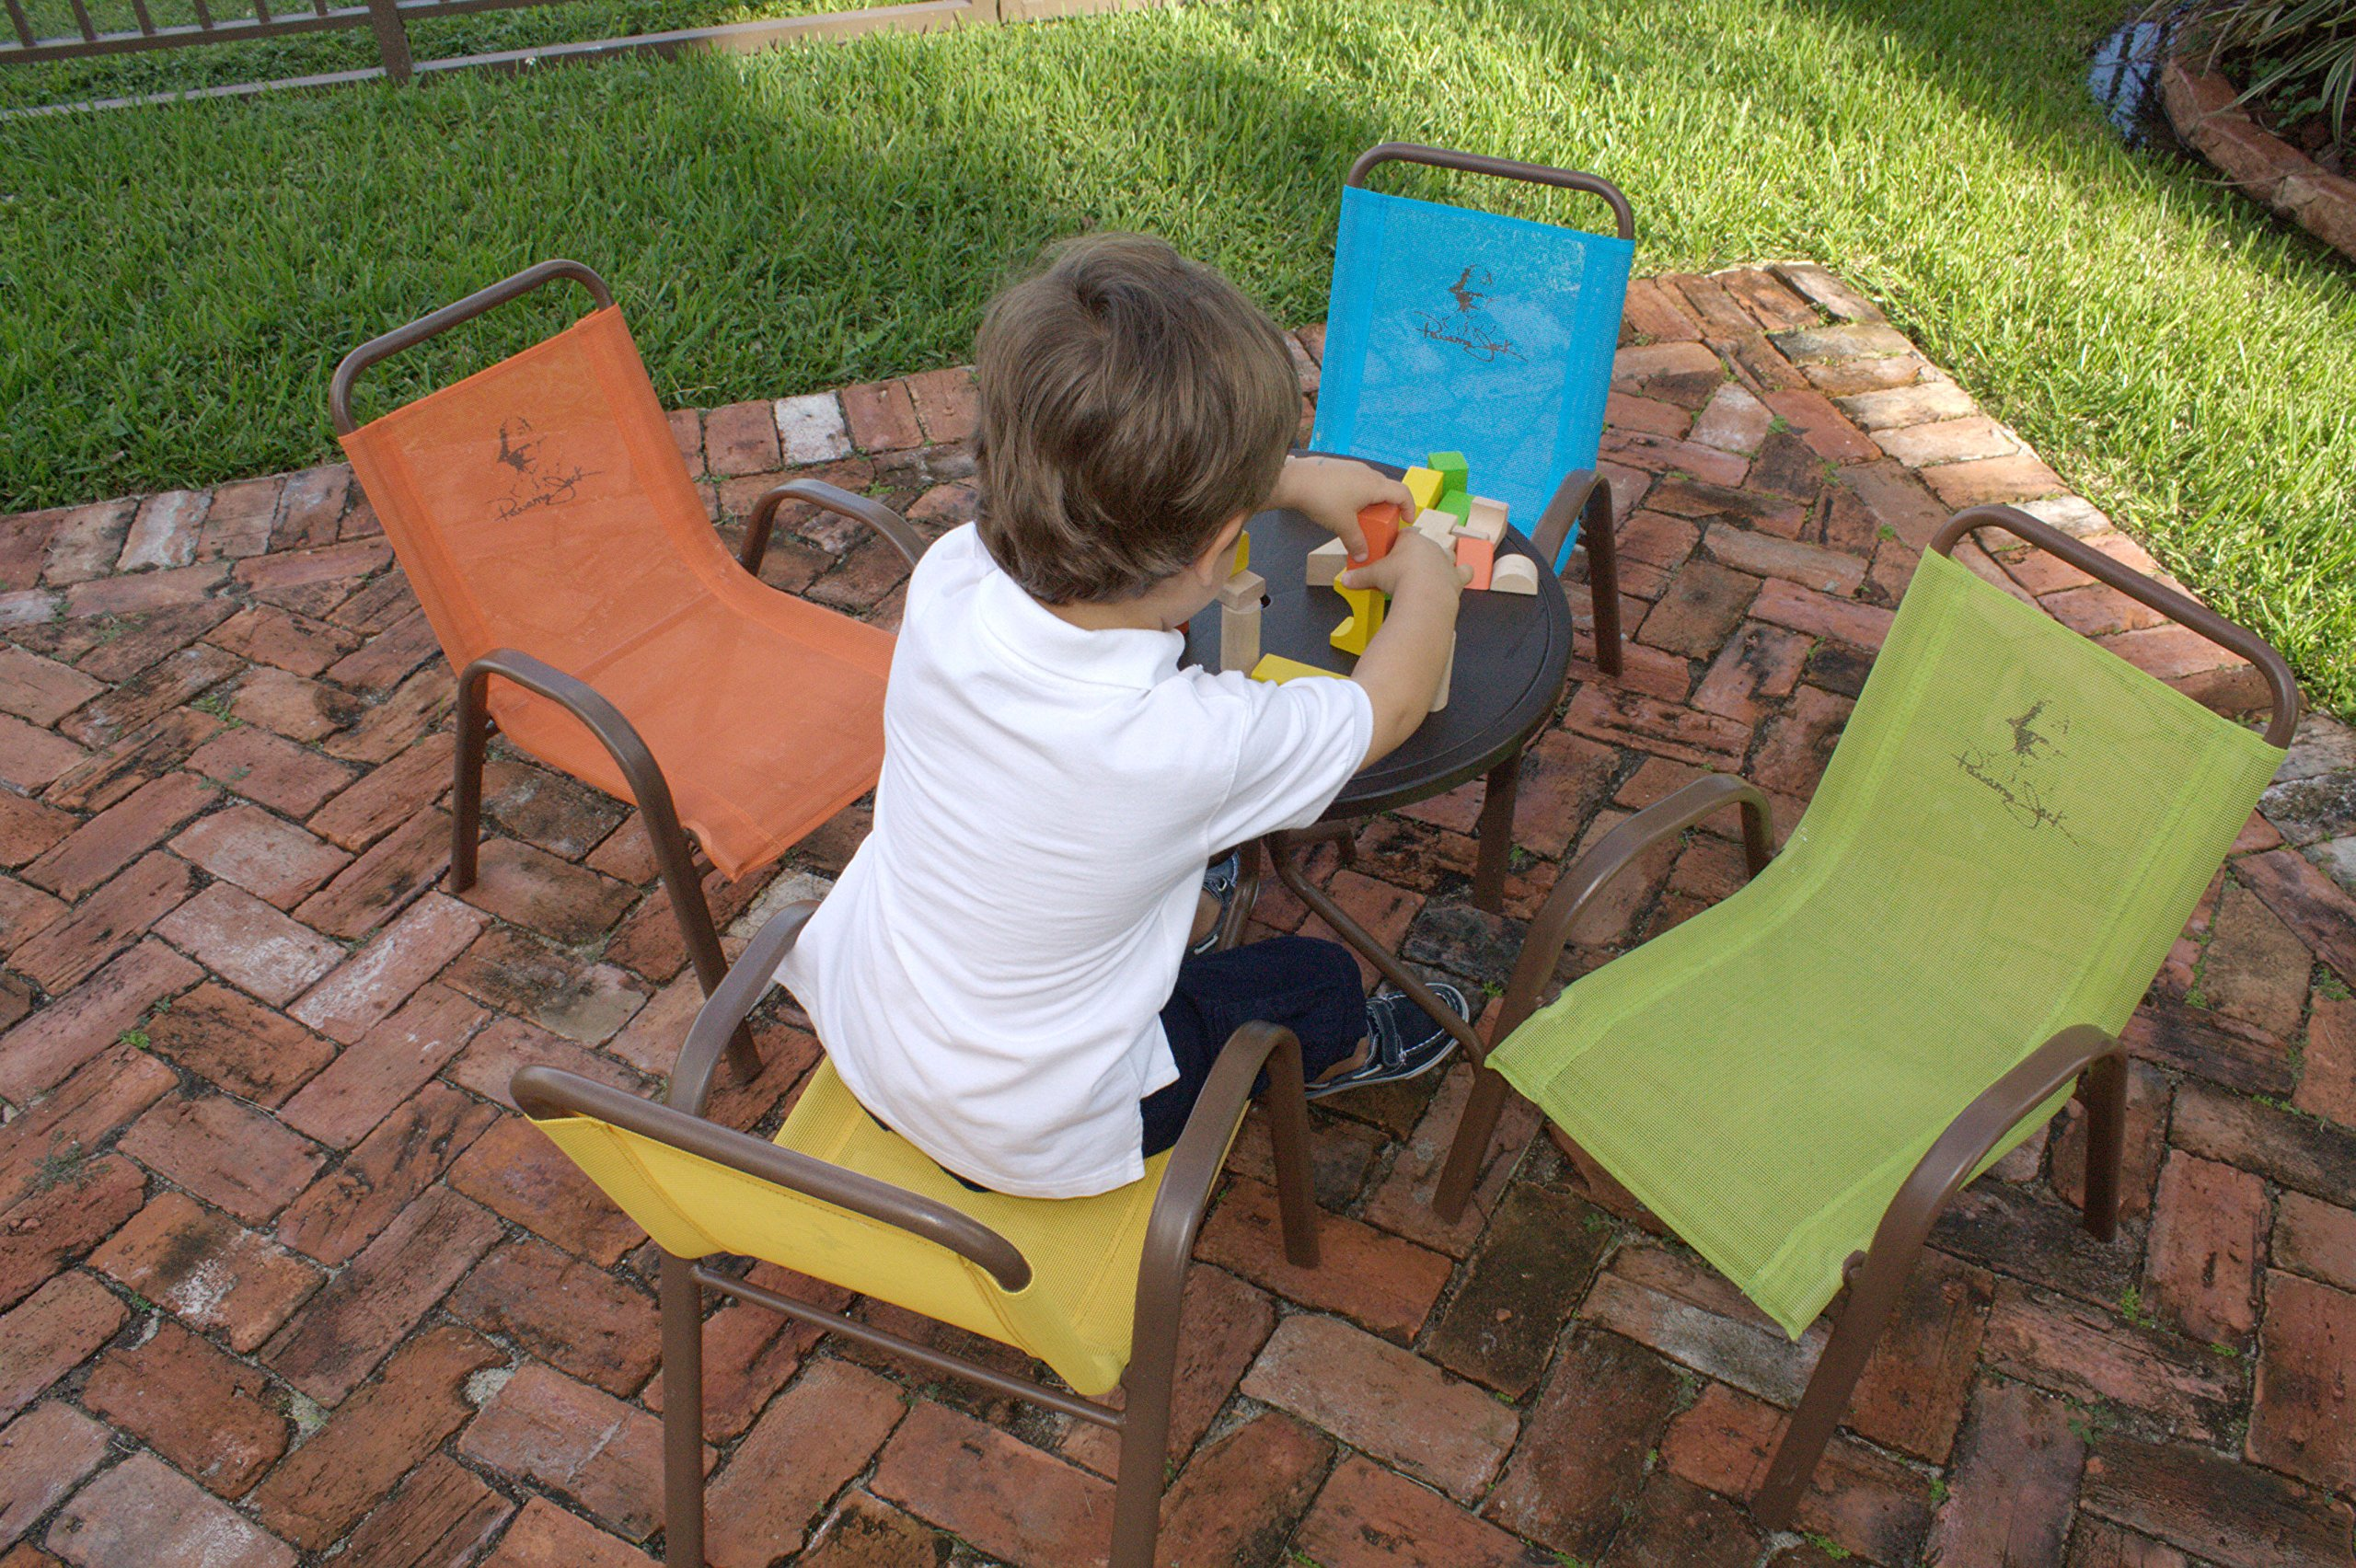 Panama Jack Kids 5-Piece Outdoor Dining Set, Multicolored by Panama Jack Kids (Image #5)